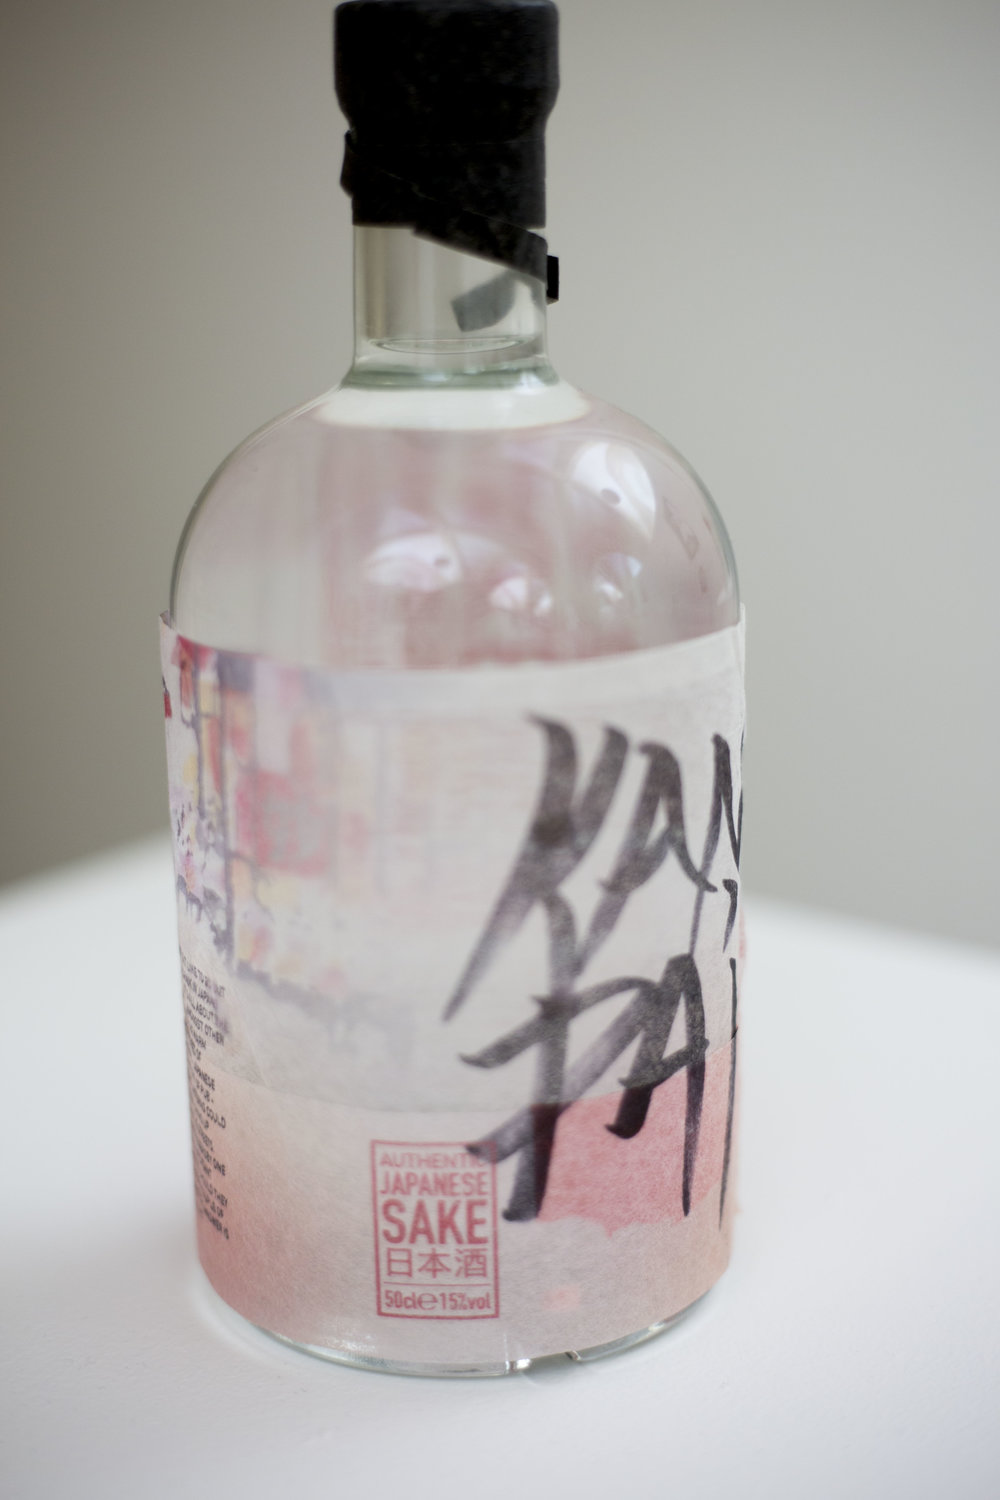 SAKE exhibition in the Crypt_HH054.JPG